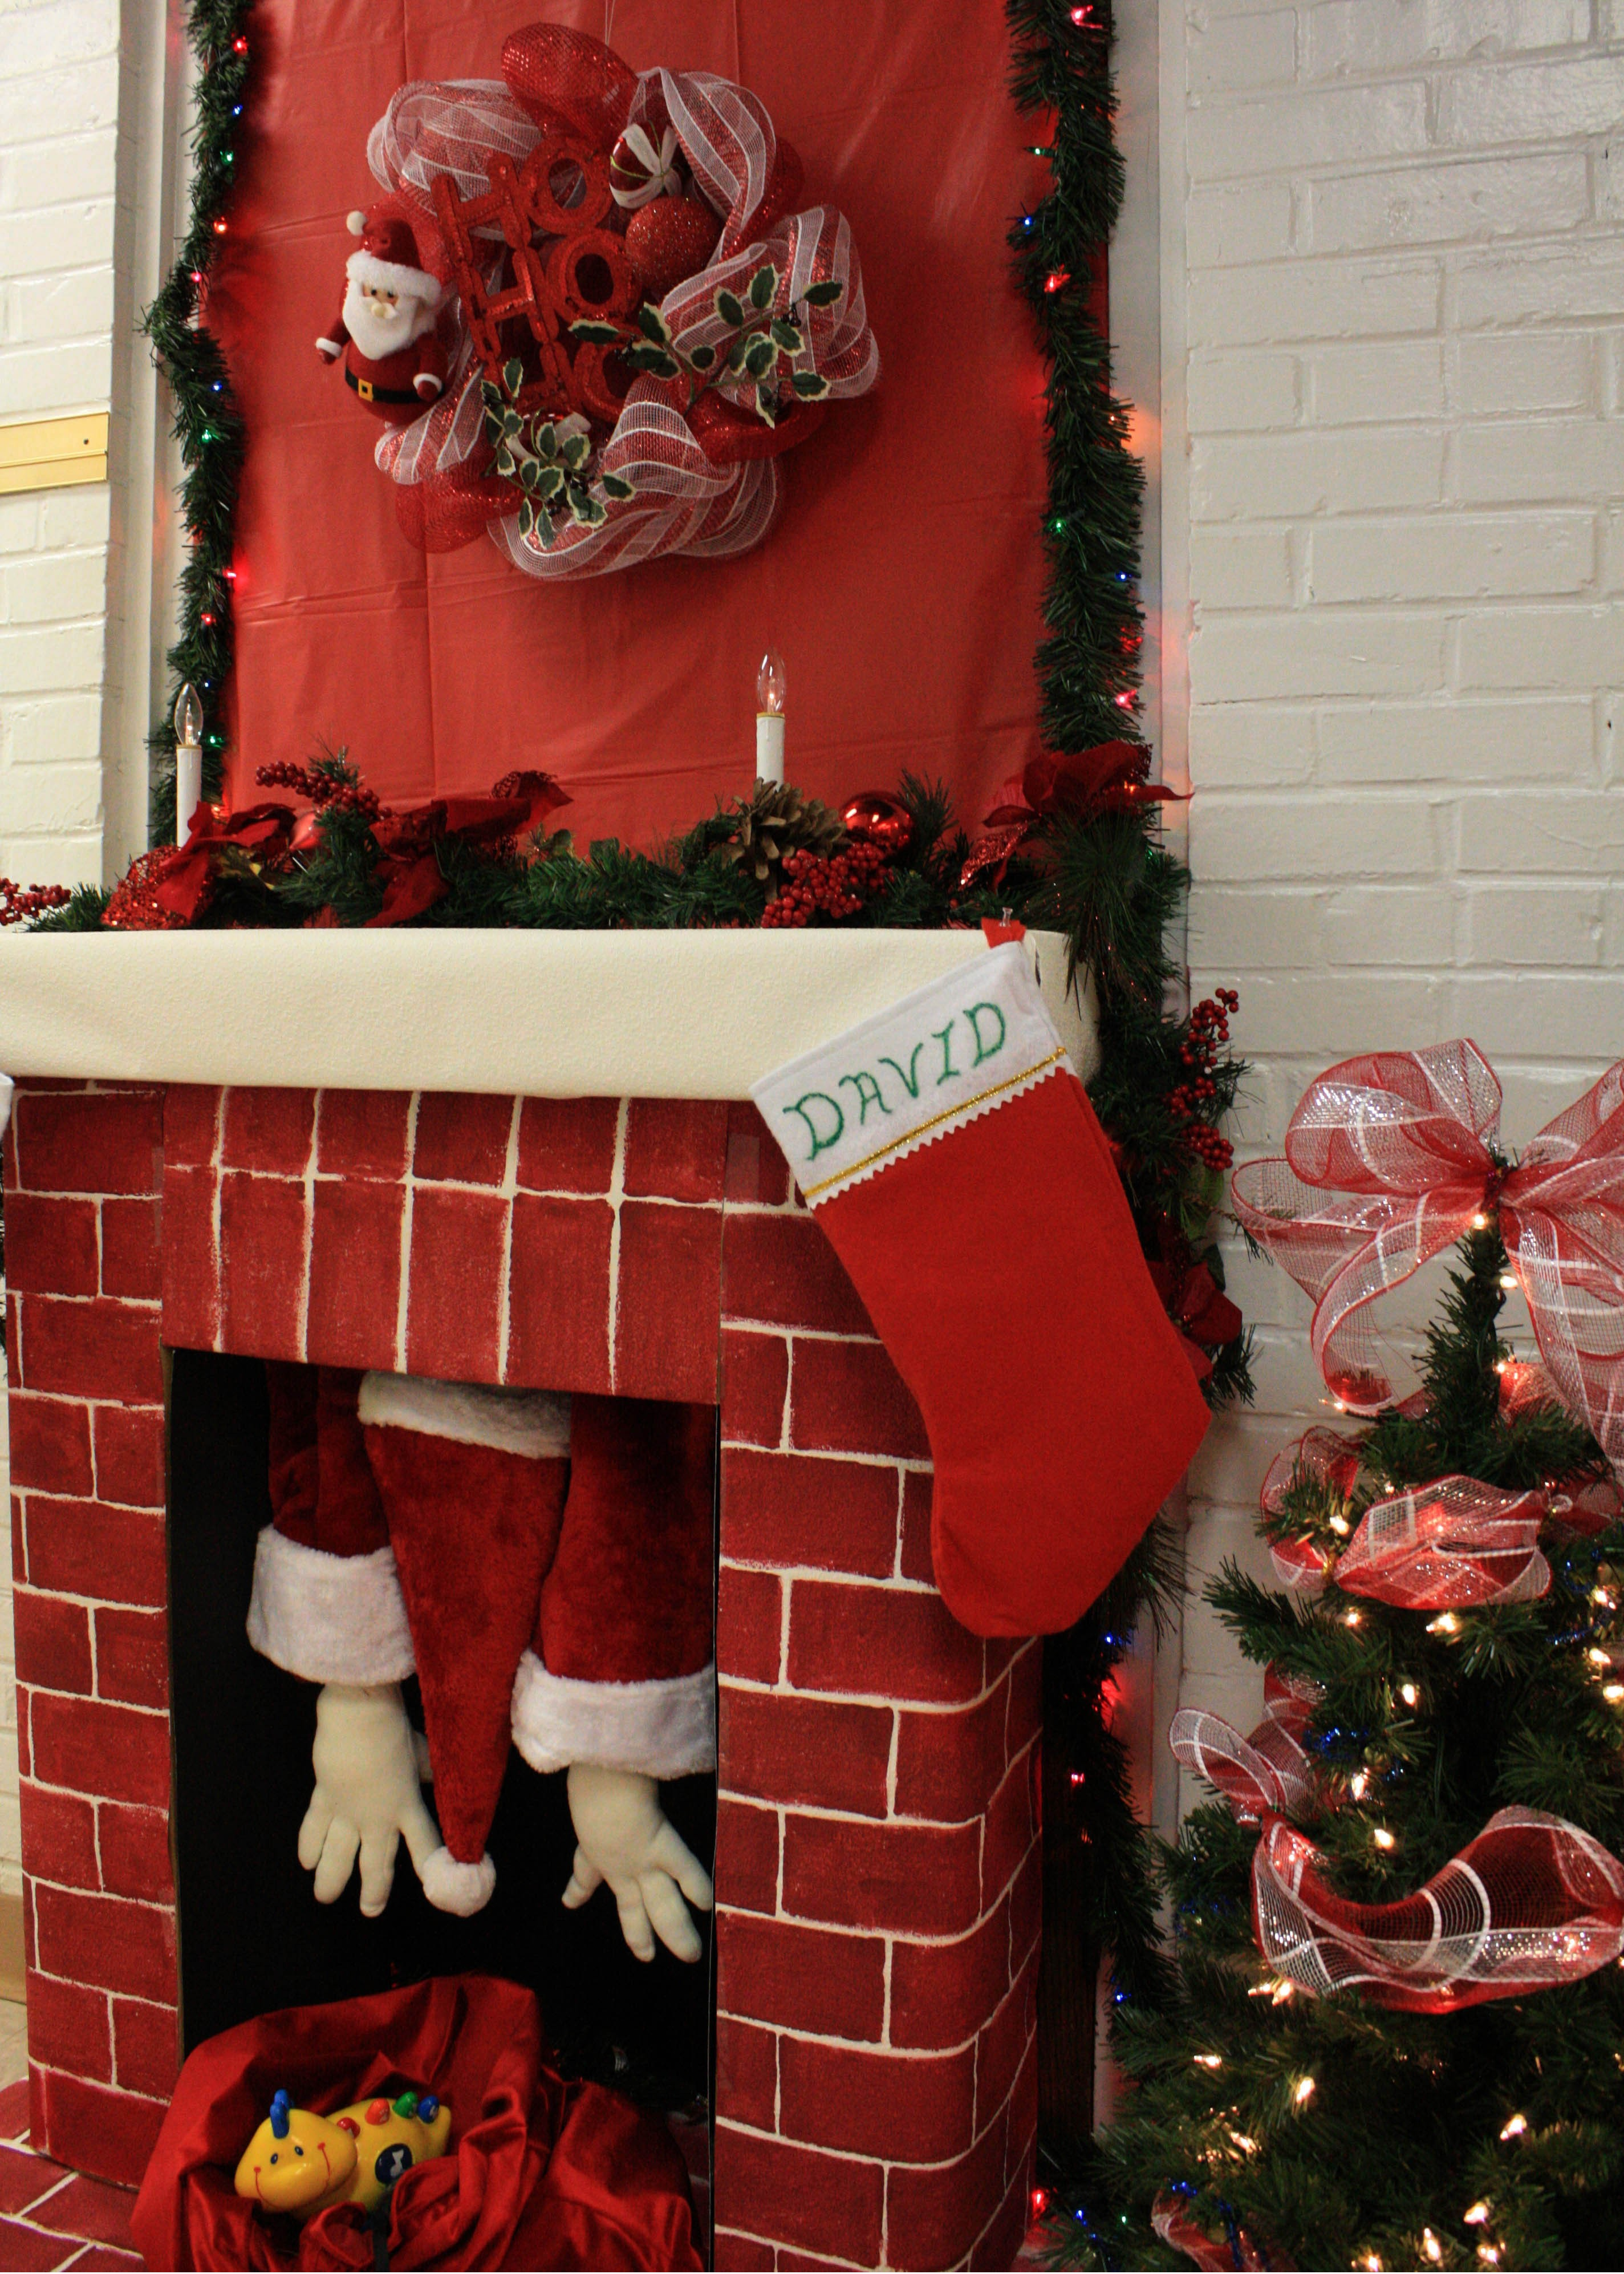 Employees' Christmas contest boosts creativity, morale